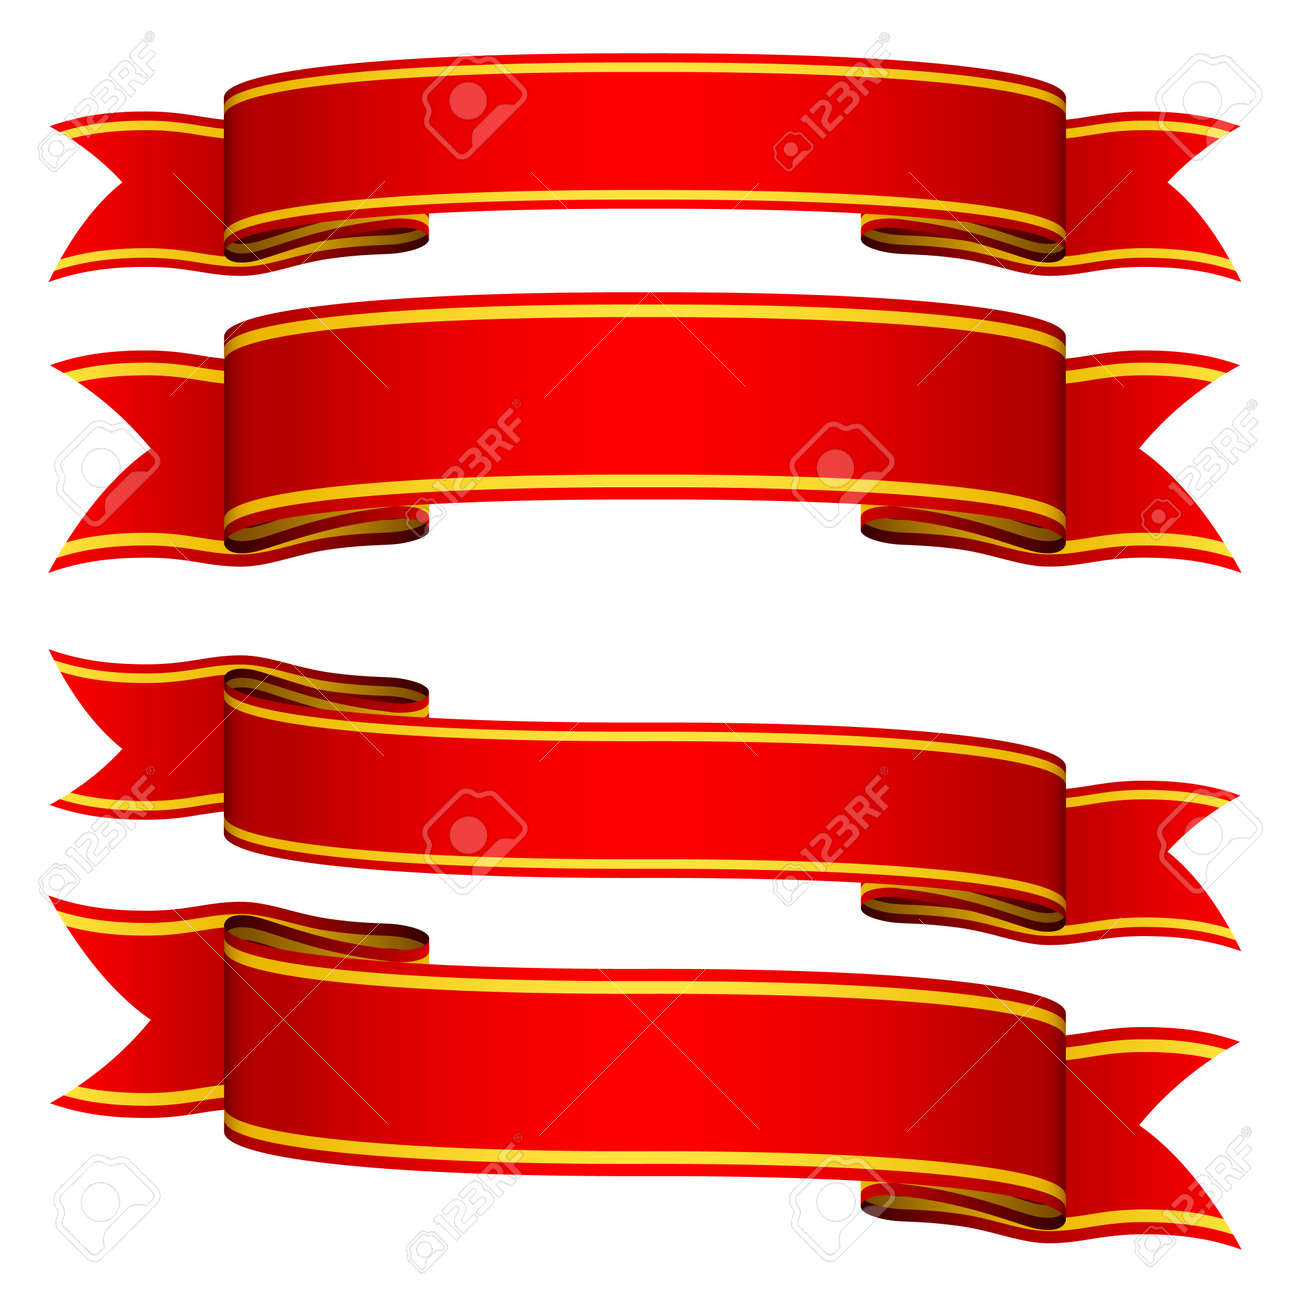 vector red ribbons royalty free cliparts vectors and stock rh 123rf com ribbon vectors for office ribbon vectors for office